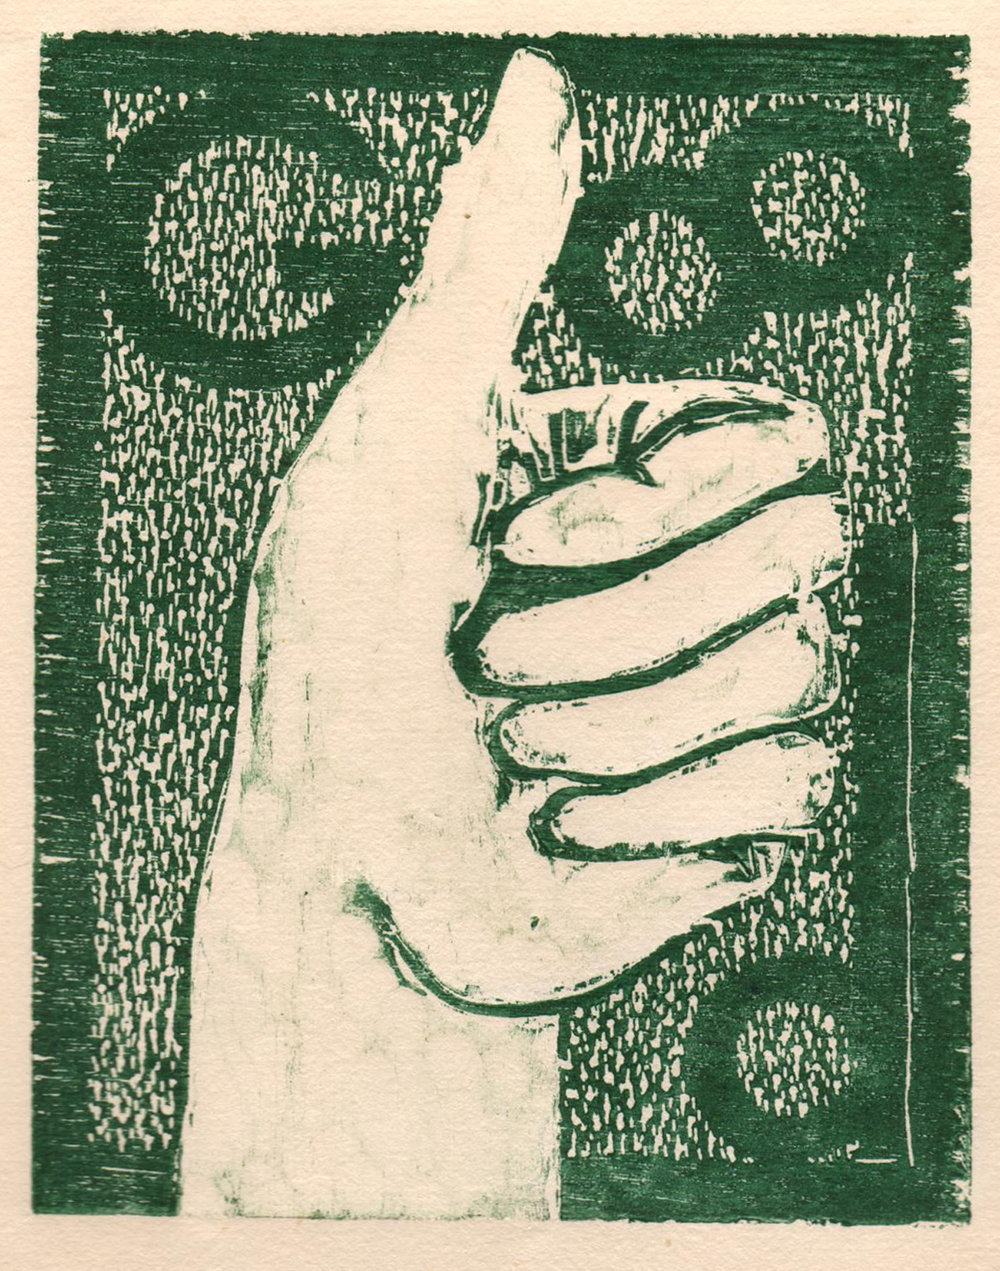 "'Helping Hands, Good', woodcut, 6.5"" x 5"", $80 unframed"